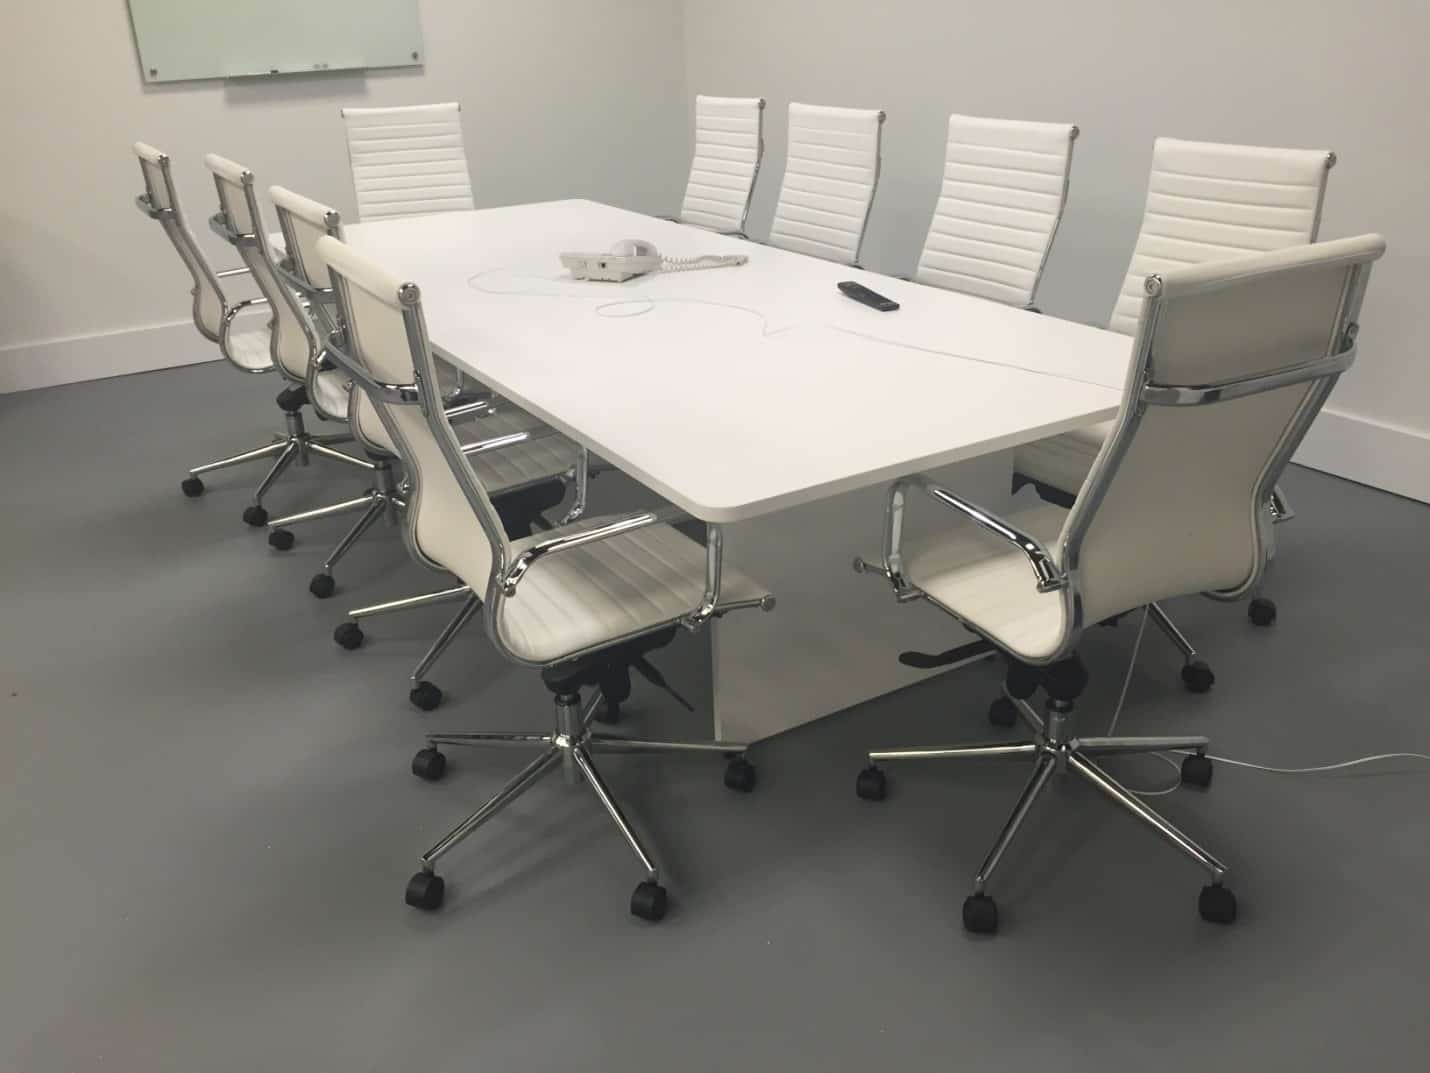 & 10 Foot Slab Base Modern Conference Table - Direct Office Solutions